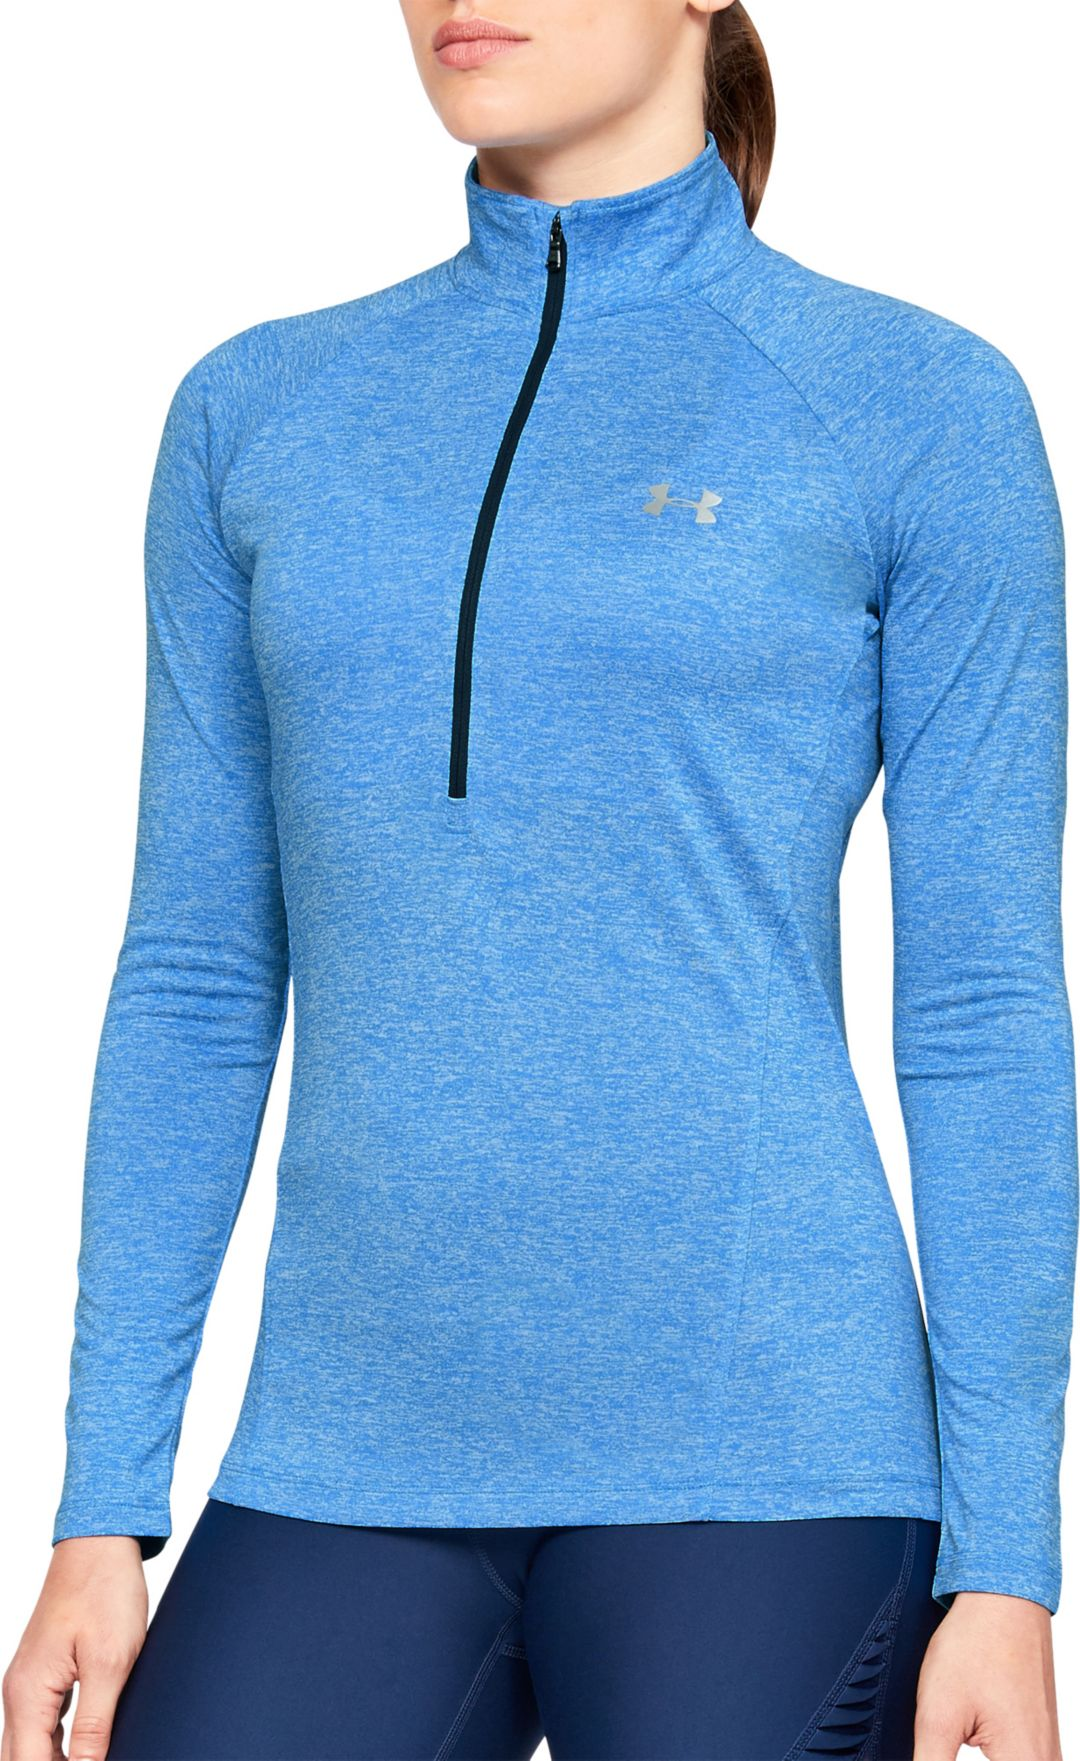 288dff50 Under Armour Women's TechTwist Print ½ Zip Long Sleeve Shirt. noImageFound.  Previous. 1